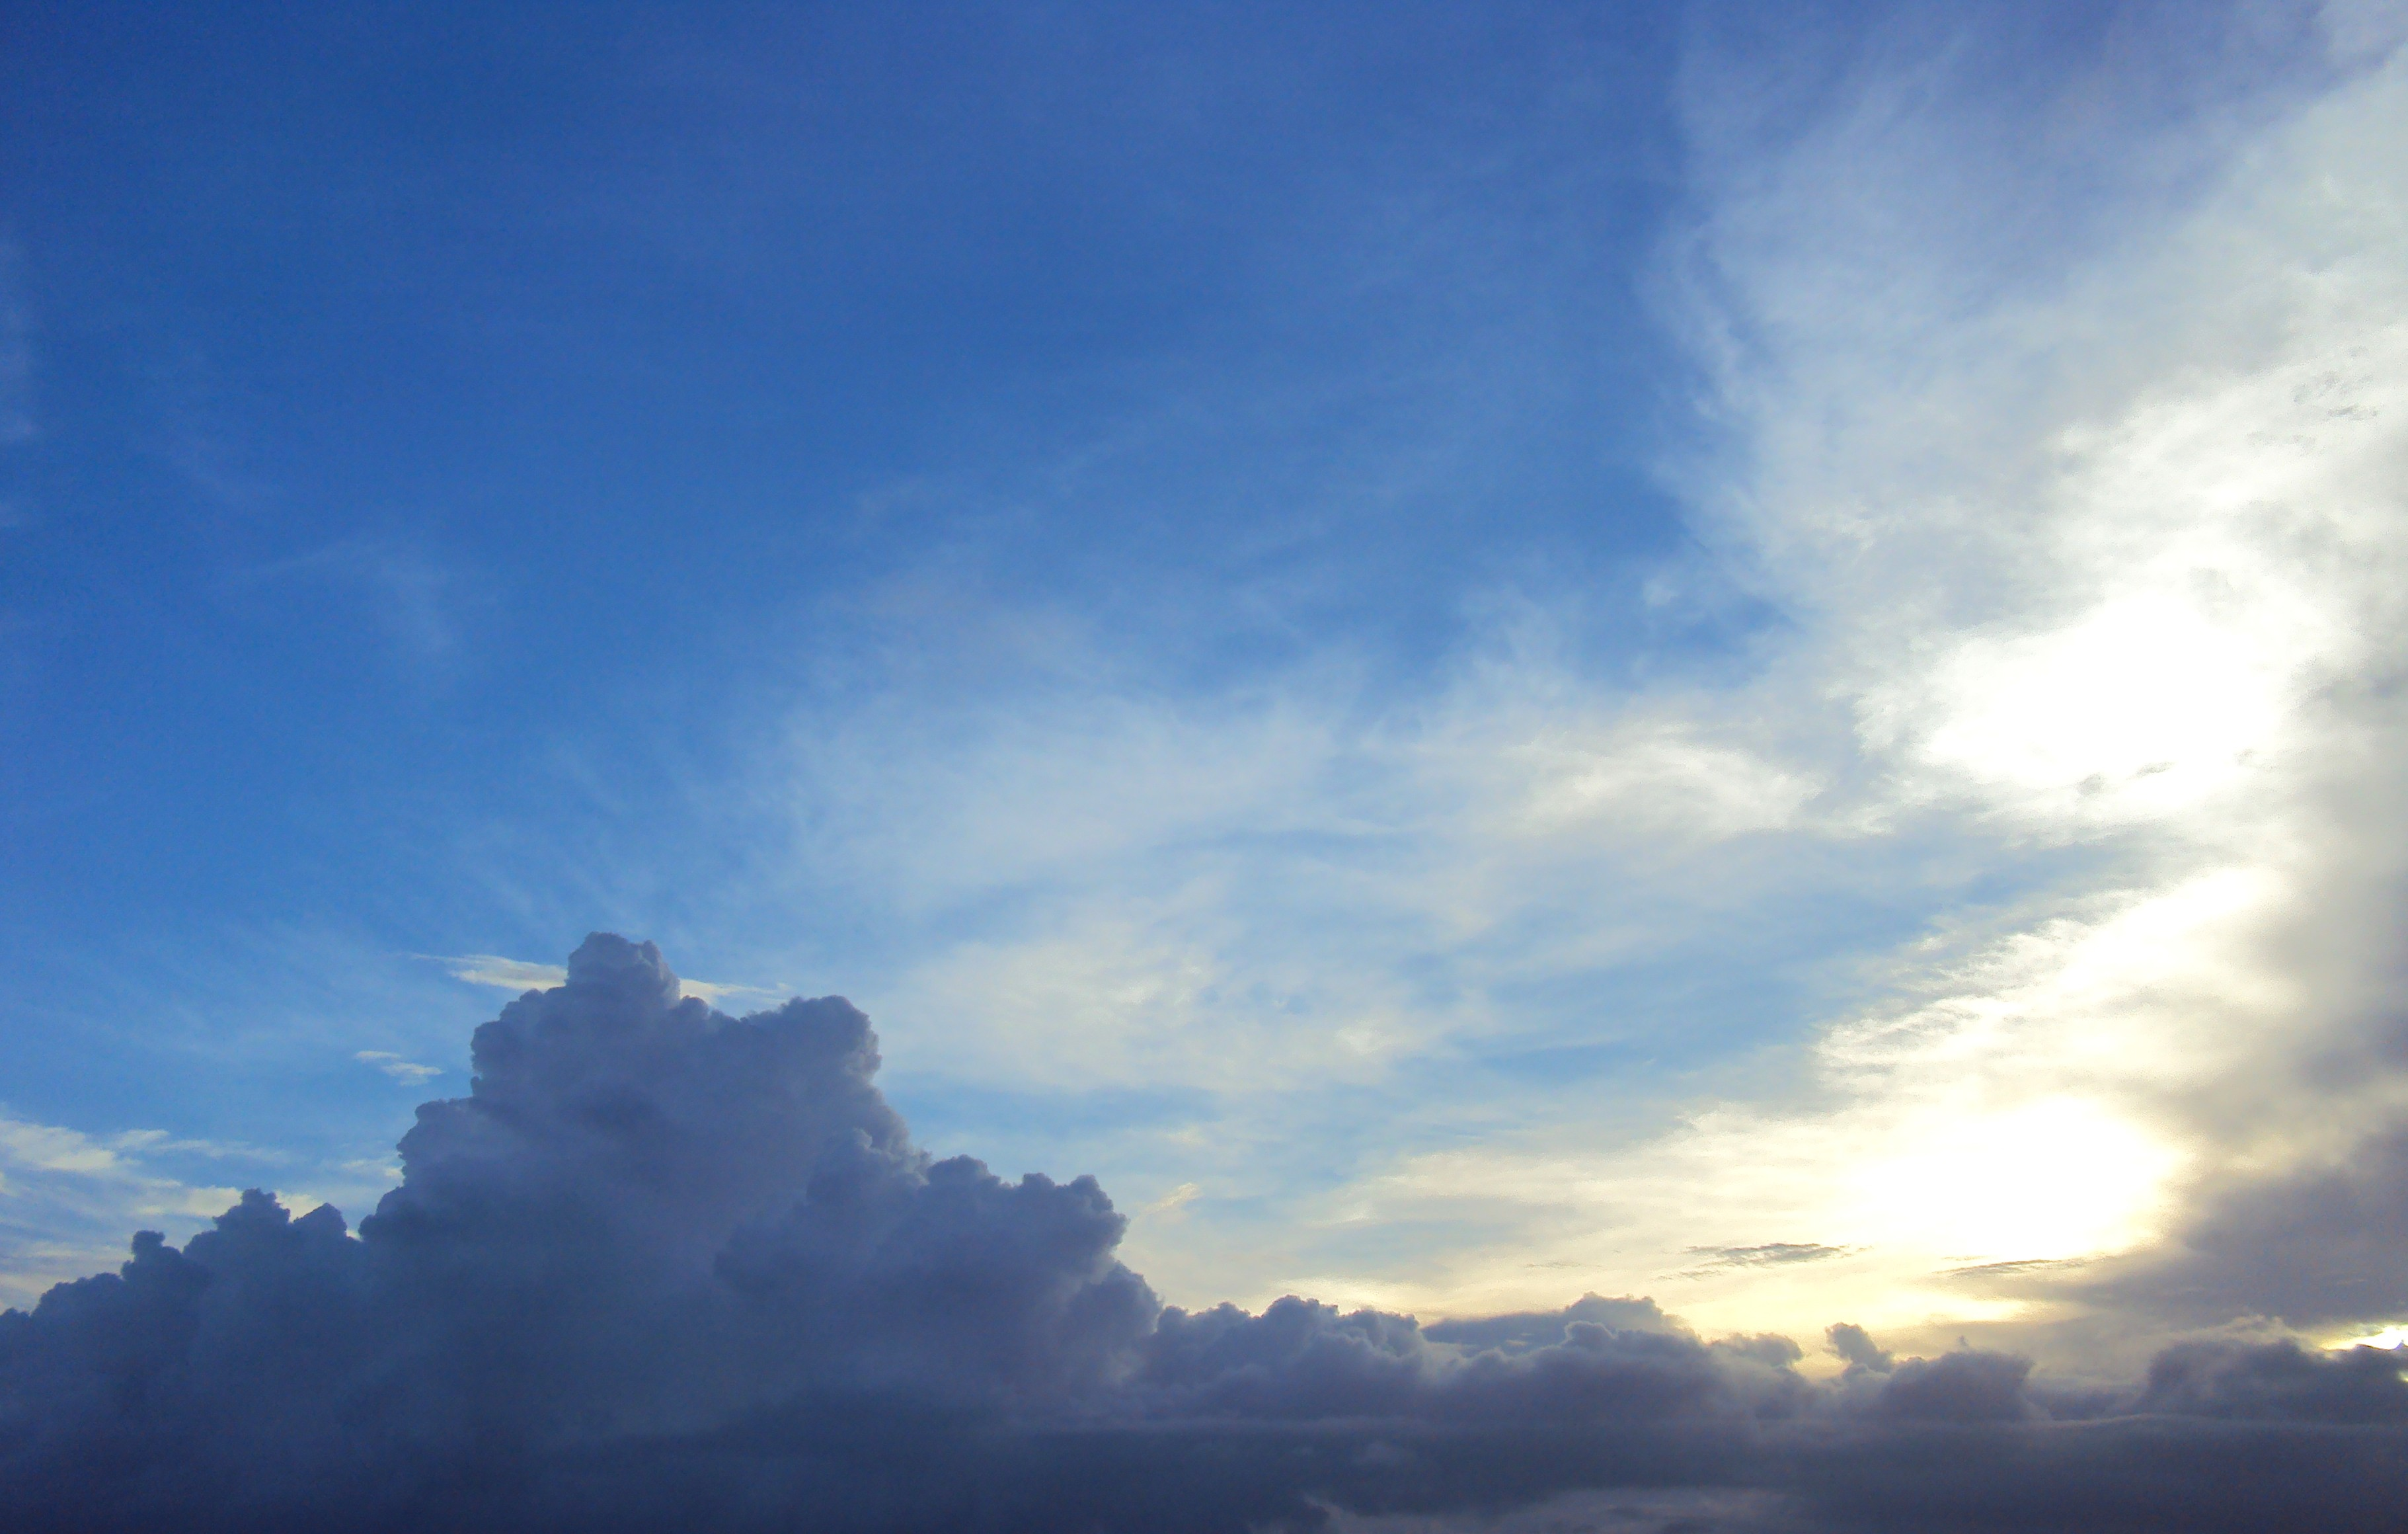 Another take at the stretch of clouds, Sky, Outdoor, Kolkata, Clouds, HQ Photo